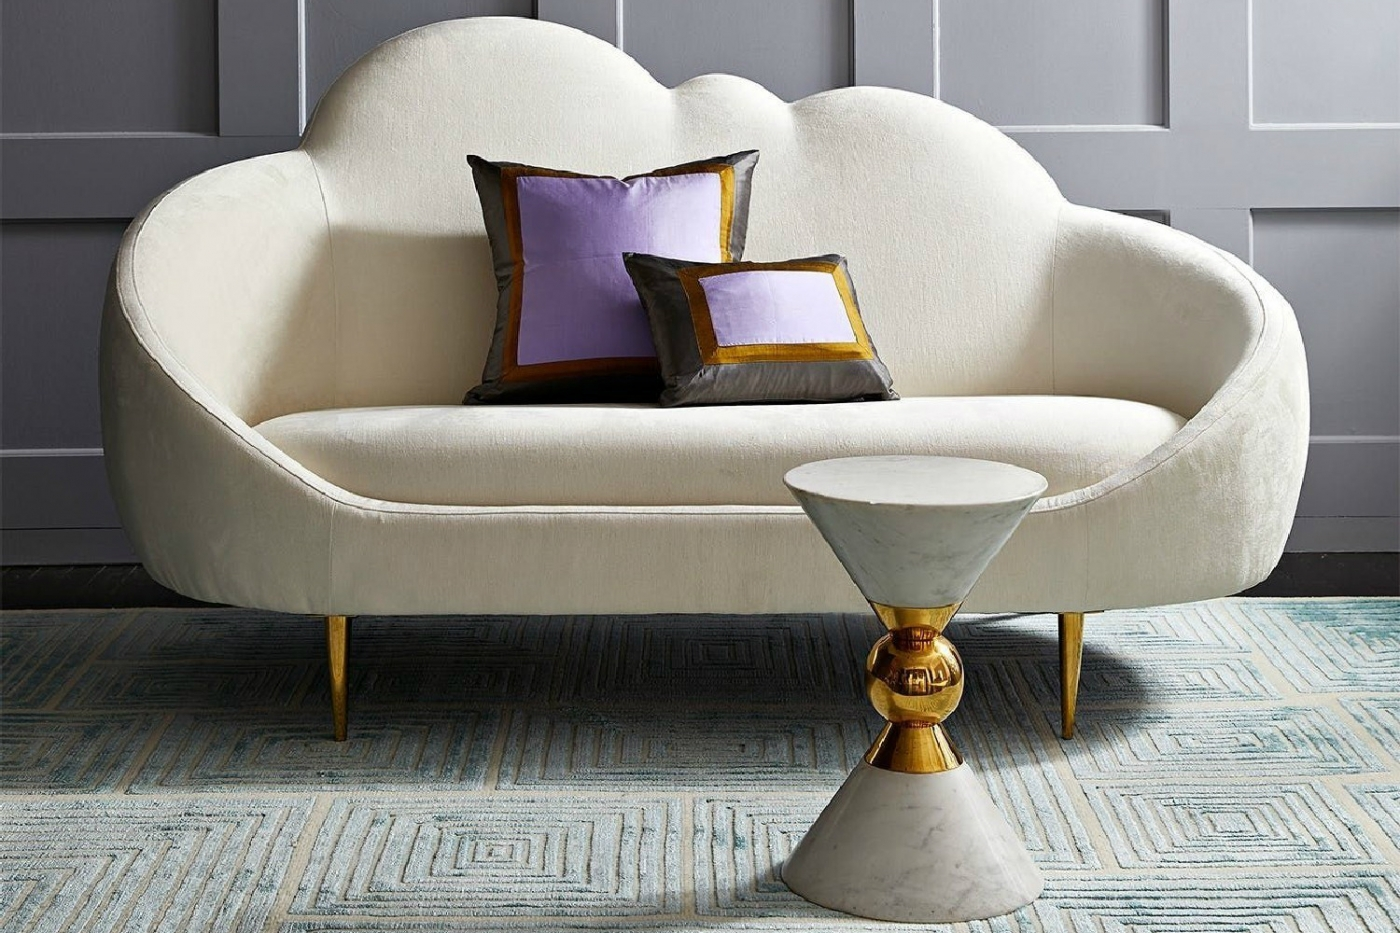 design trends Best Almond-Colored Design Trends That Designers Are Obsessed With Best Almond Colored Design That Designers Are Obsessed With feature 1400x933